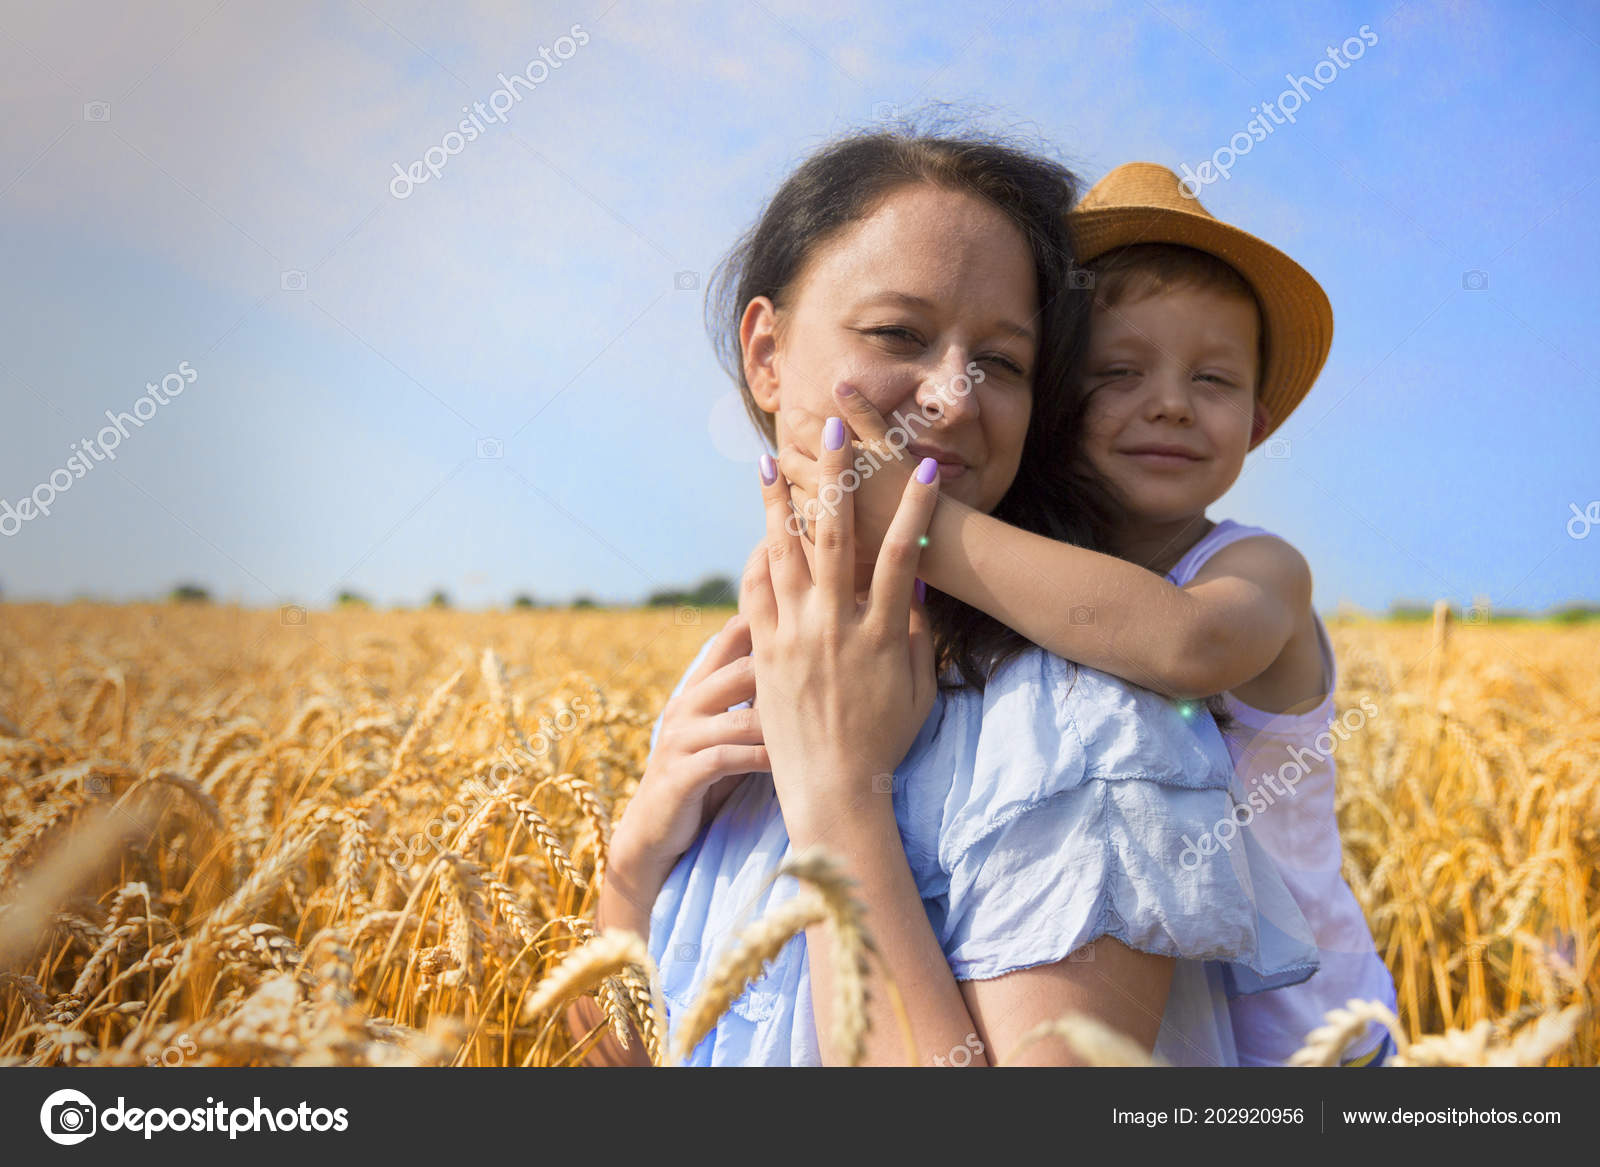 Mom and son are laughing and talking on the wheat field. Front view. —  Photo by anastasiyparfenyuk